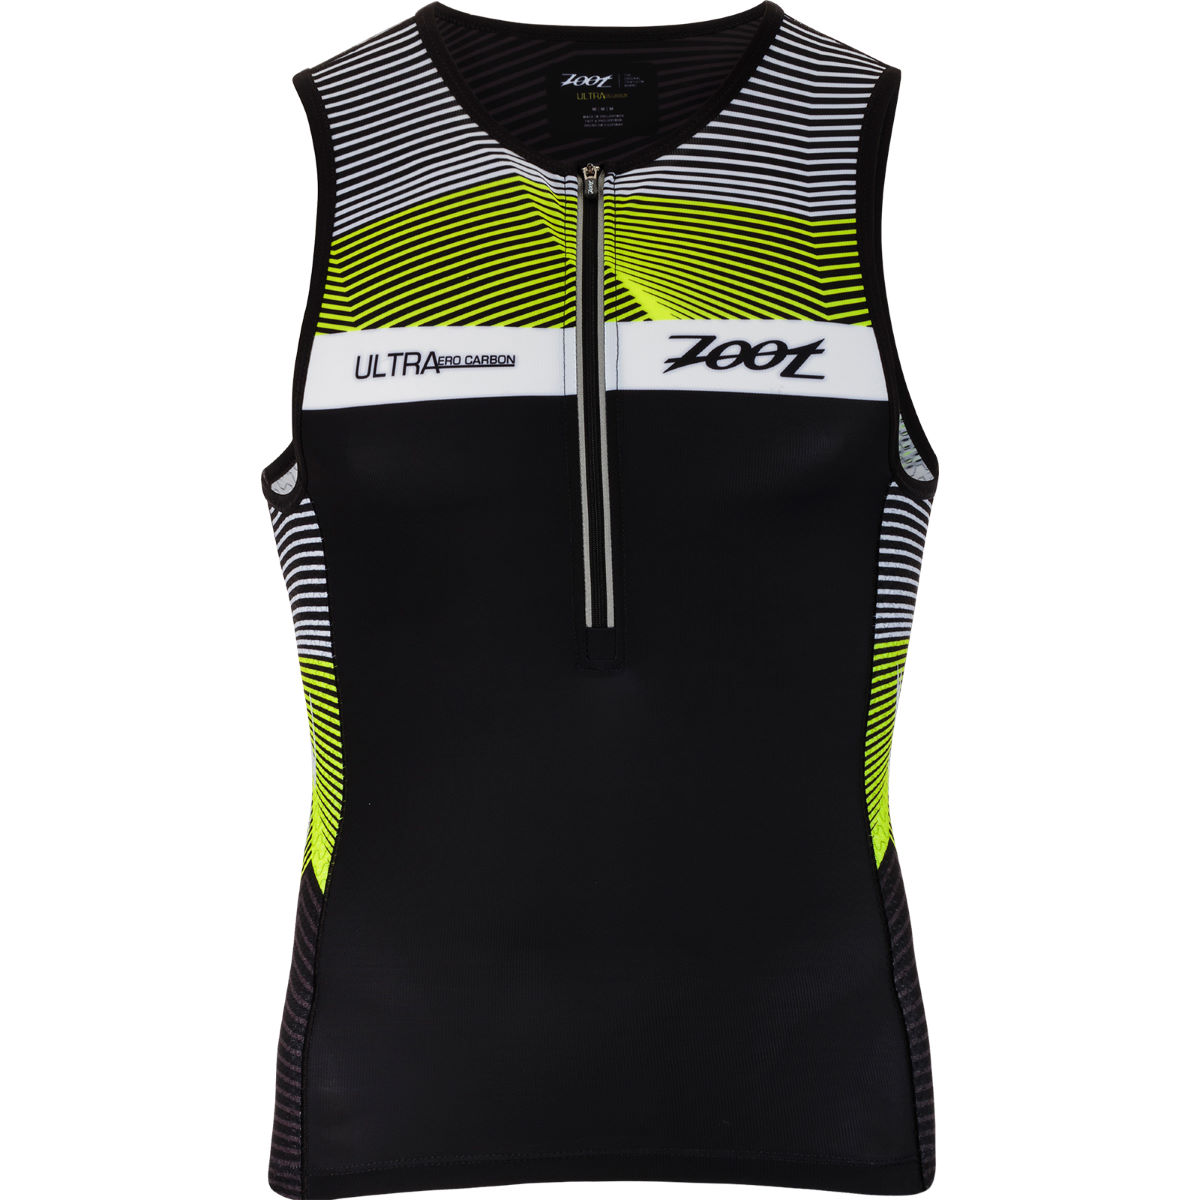 Image of Débardeur de triathlon Zoot Ultra - S Black/Multi | Hauts de triathlon